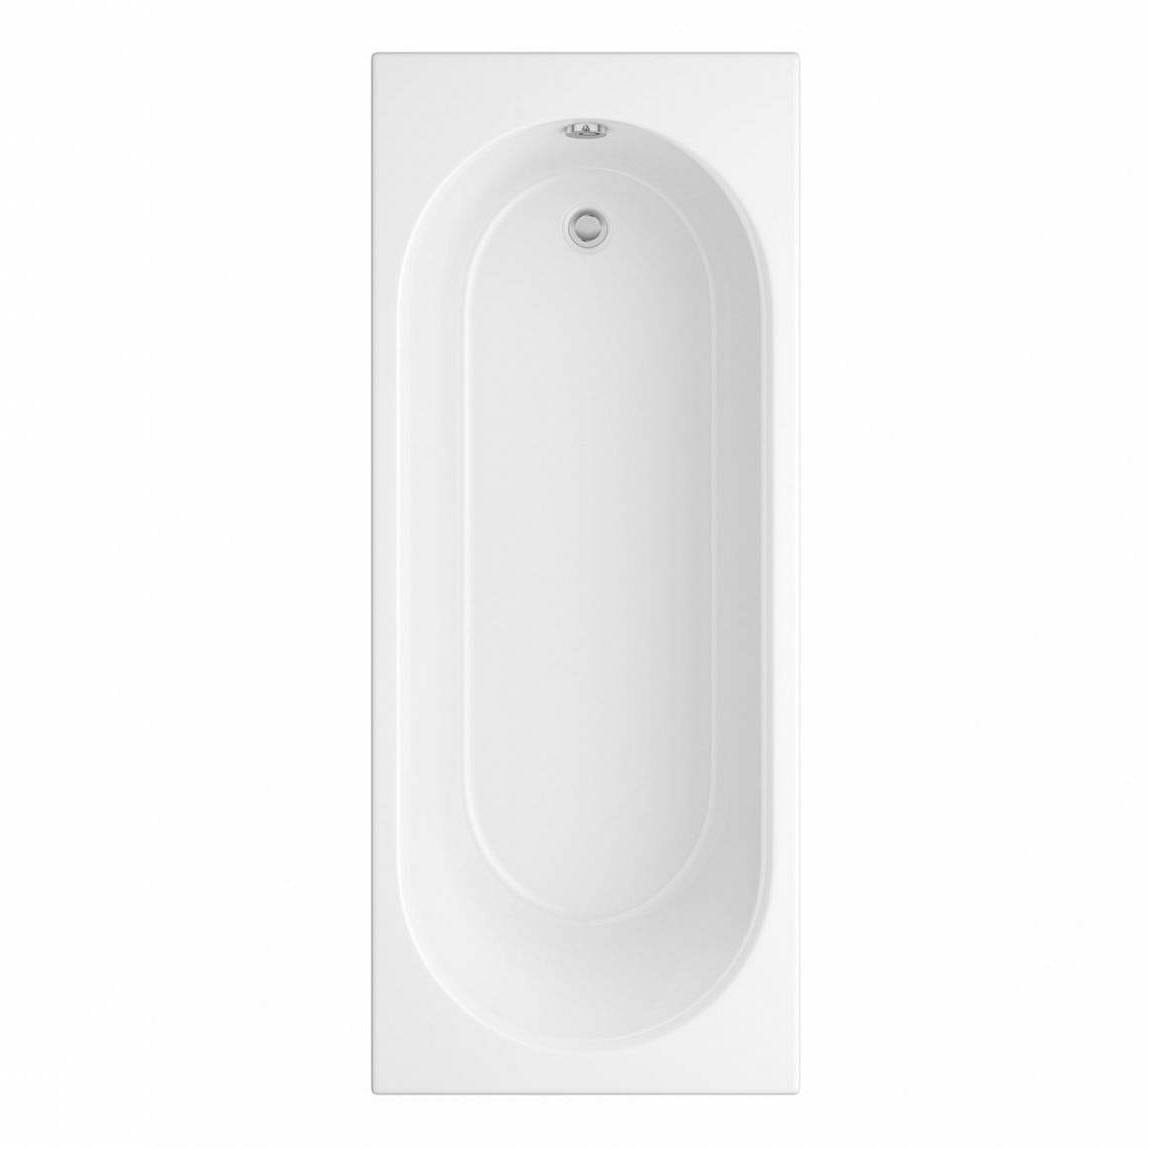 Orchard round edge single ended straight bath offer pack